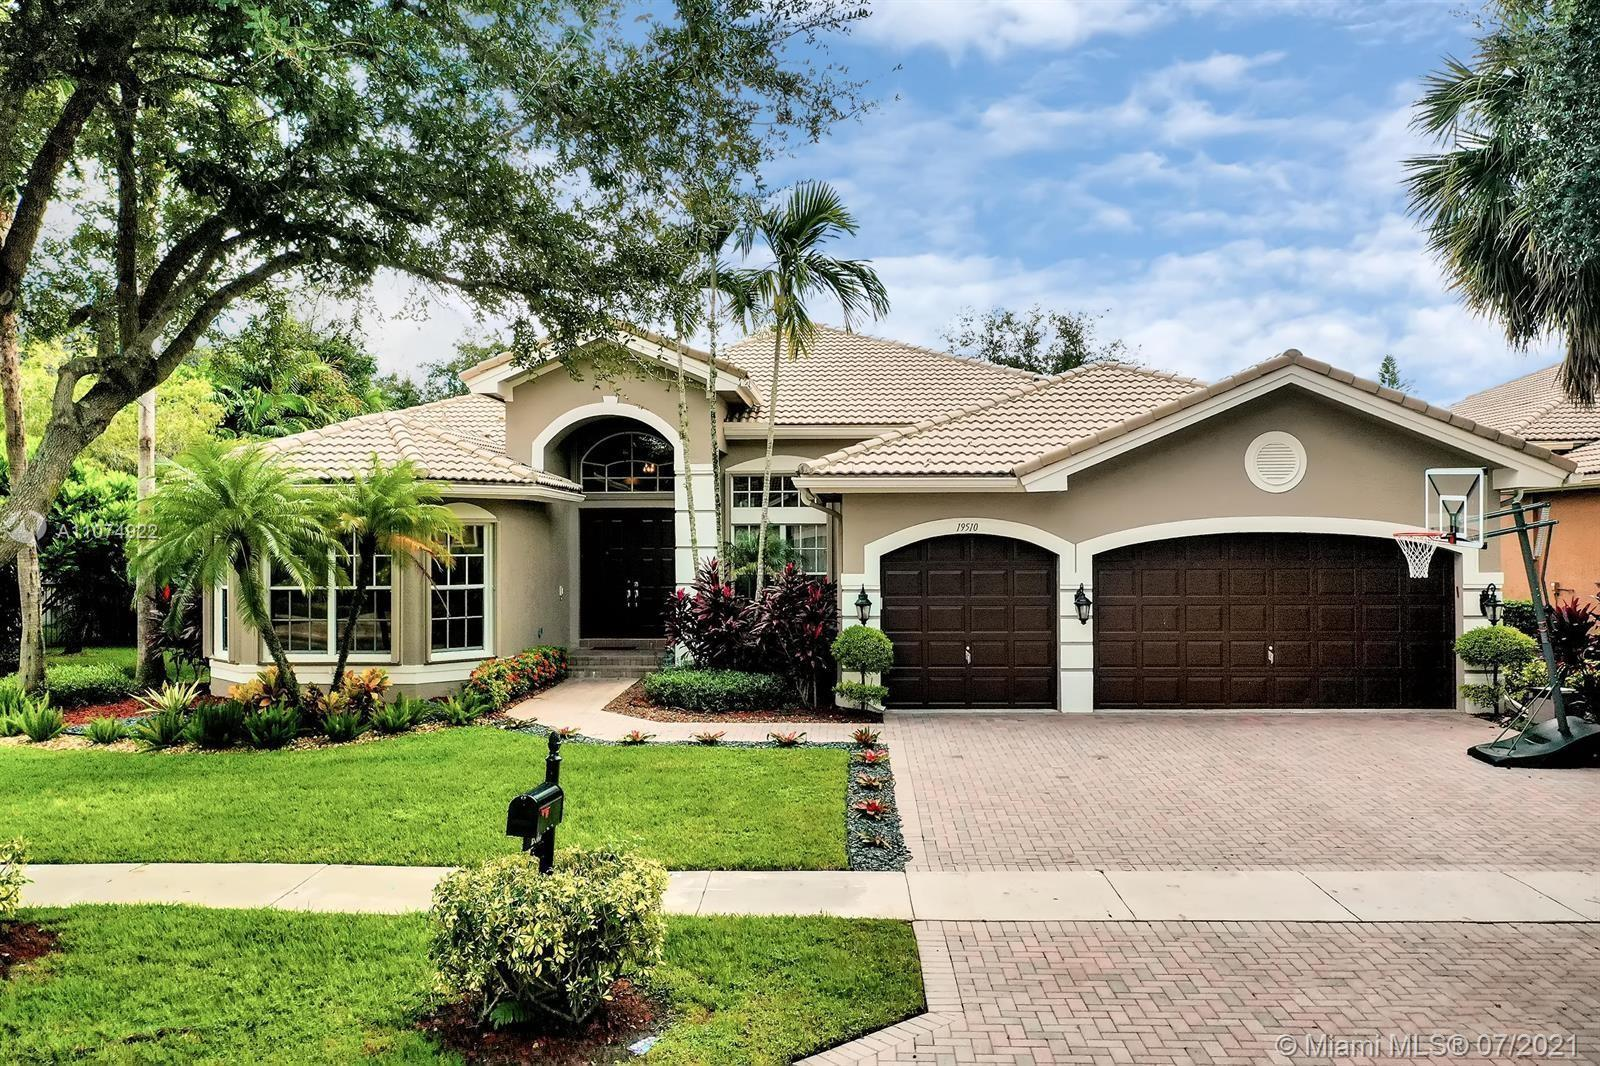 Spacious single story 5 bedroom 3.5 bath home with a large office that can be used as a 6th bedroom